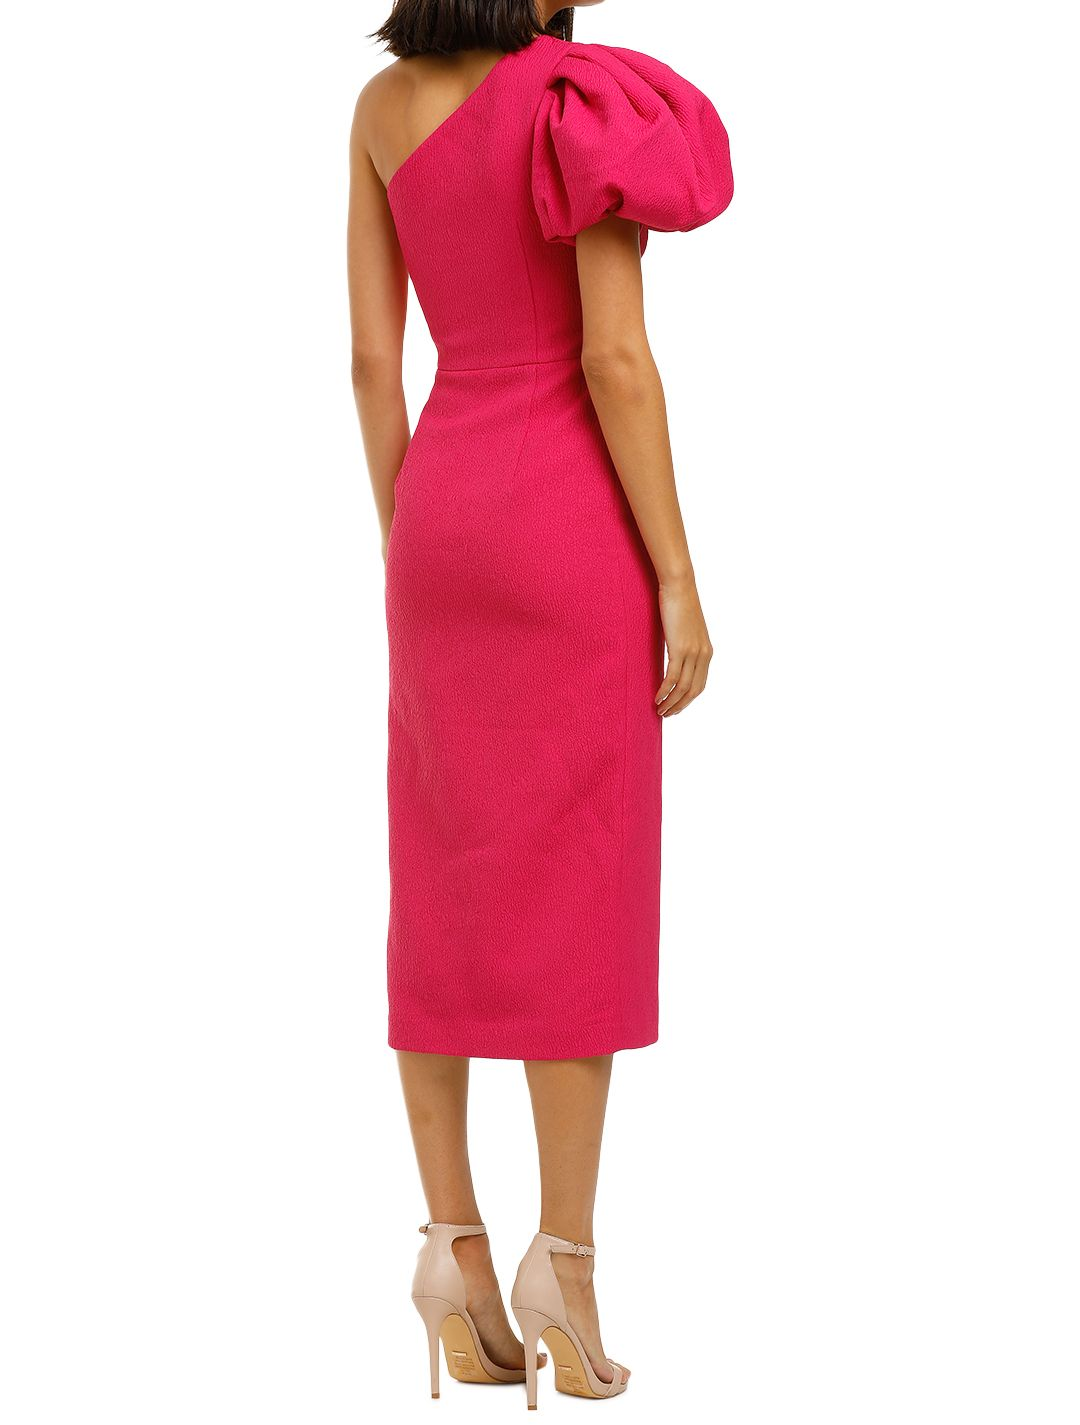 Rebecca-Vallance-Natalia-One-Sleeve-Midi-Dress-Magenta-Back